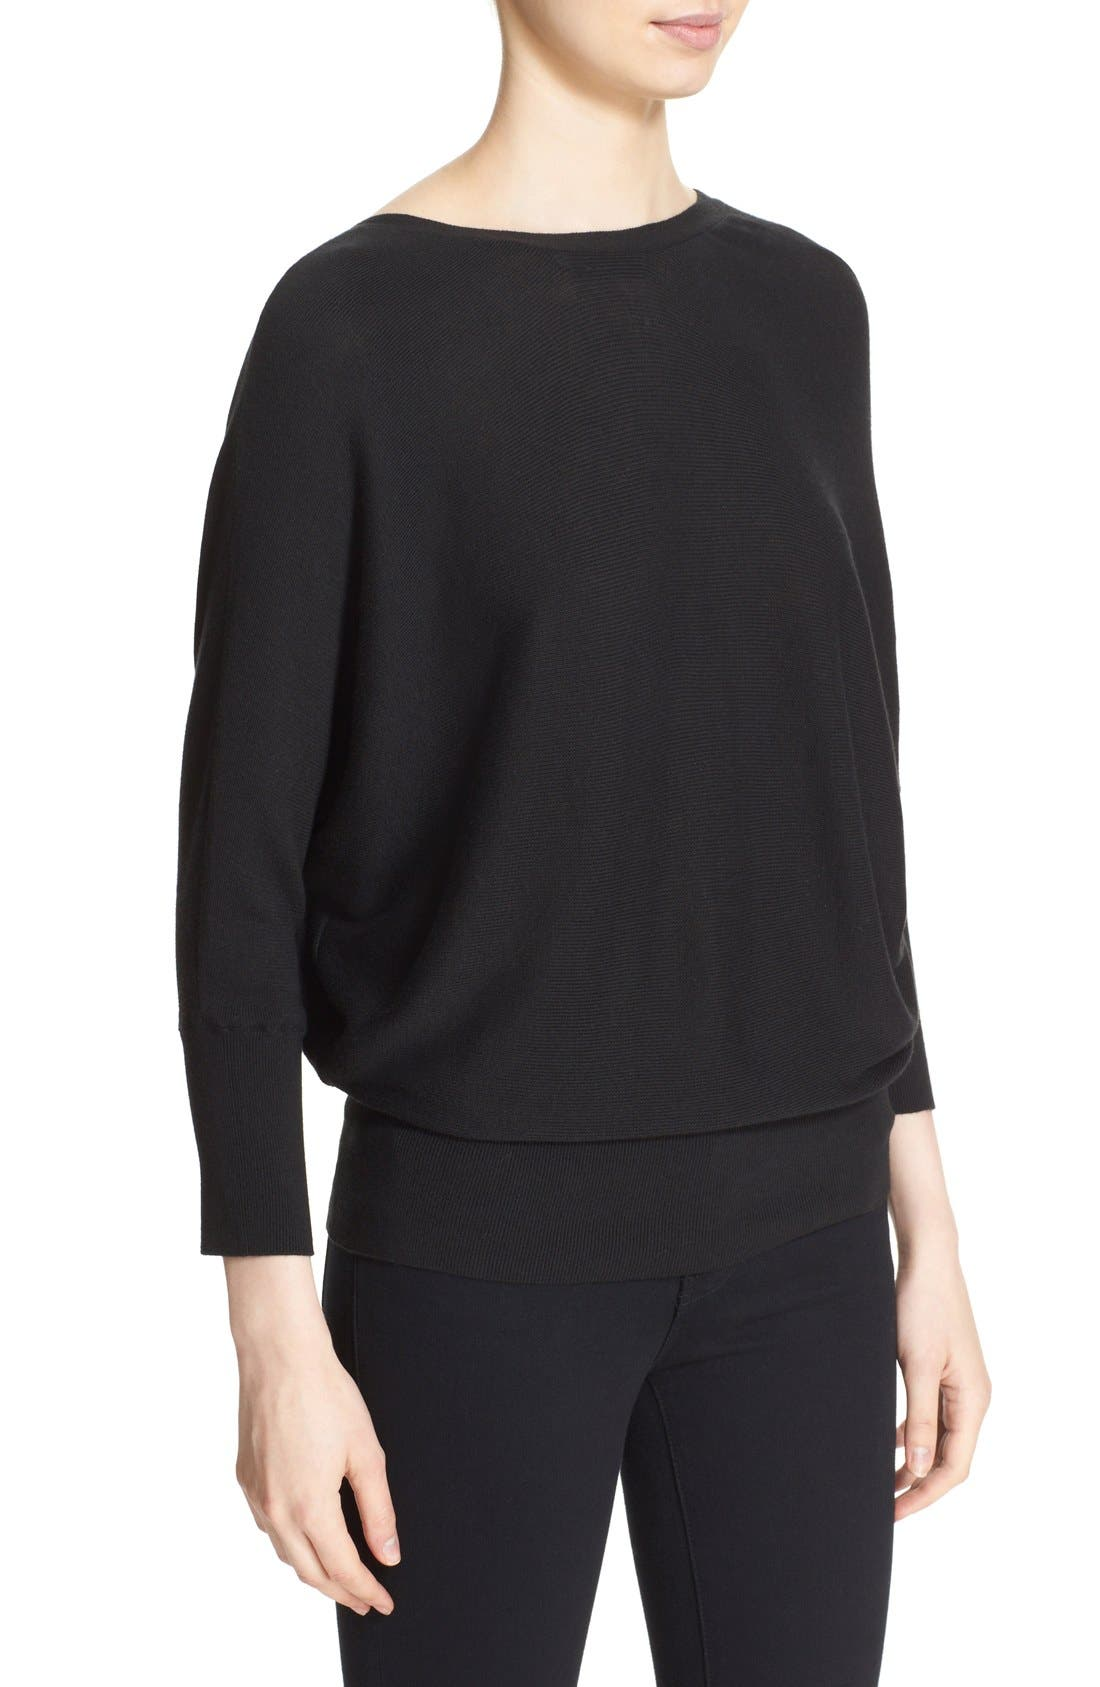 MILLY,                             Convertible Wrap Sweater,                             Alternate thumbnail 3, color,                             001